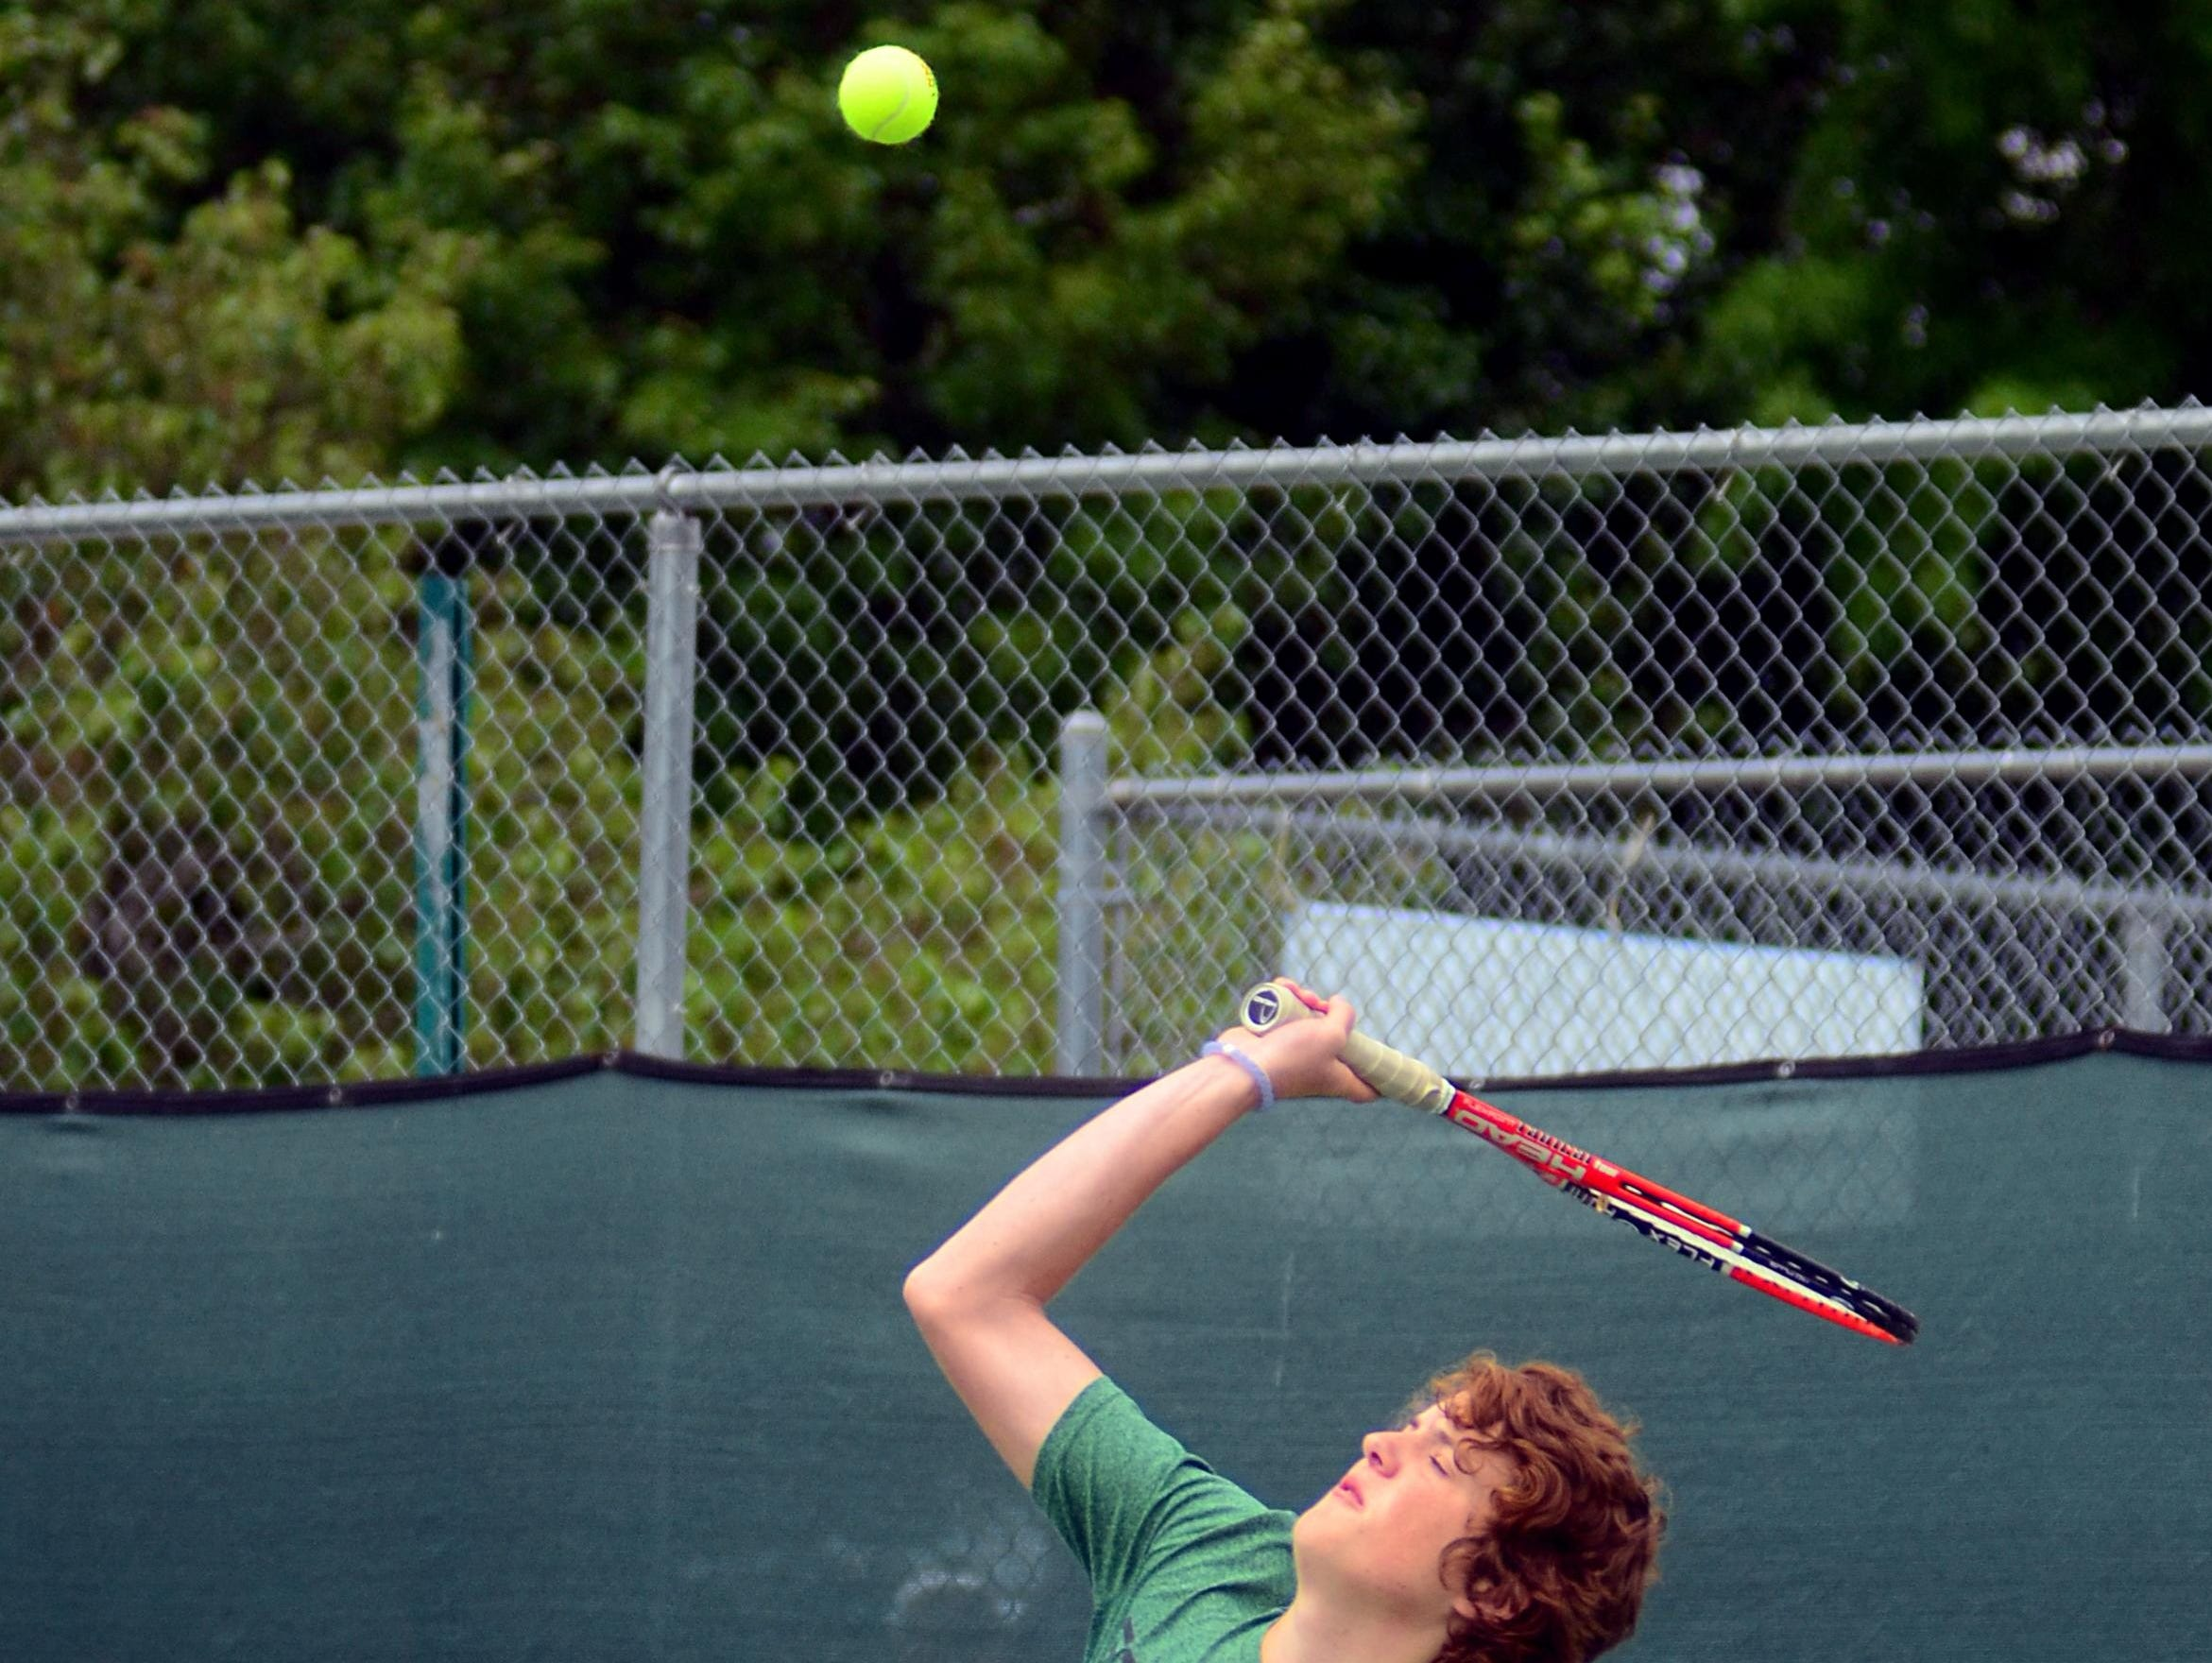 Gallatin High junior Justin White hits a serve during his first-round singles match on Tuesday at the District 9-AAA Individual Tennis Tournament.